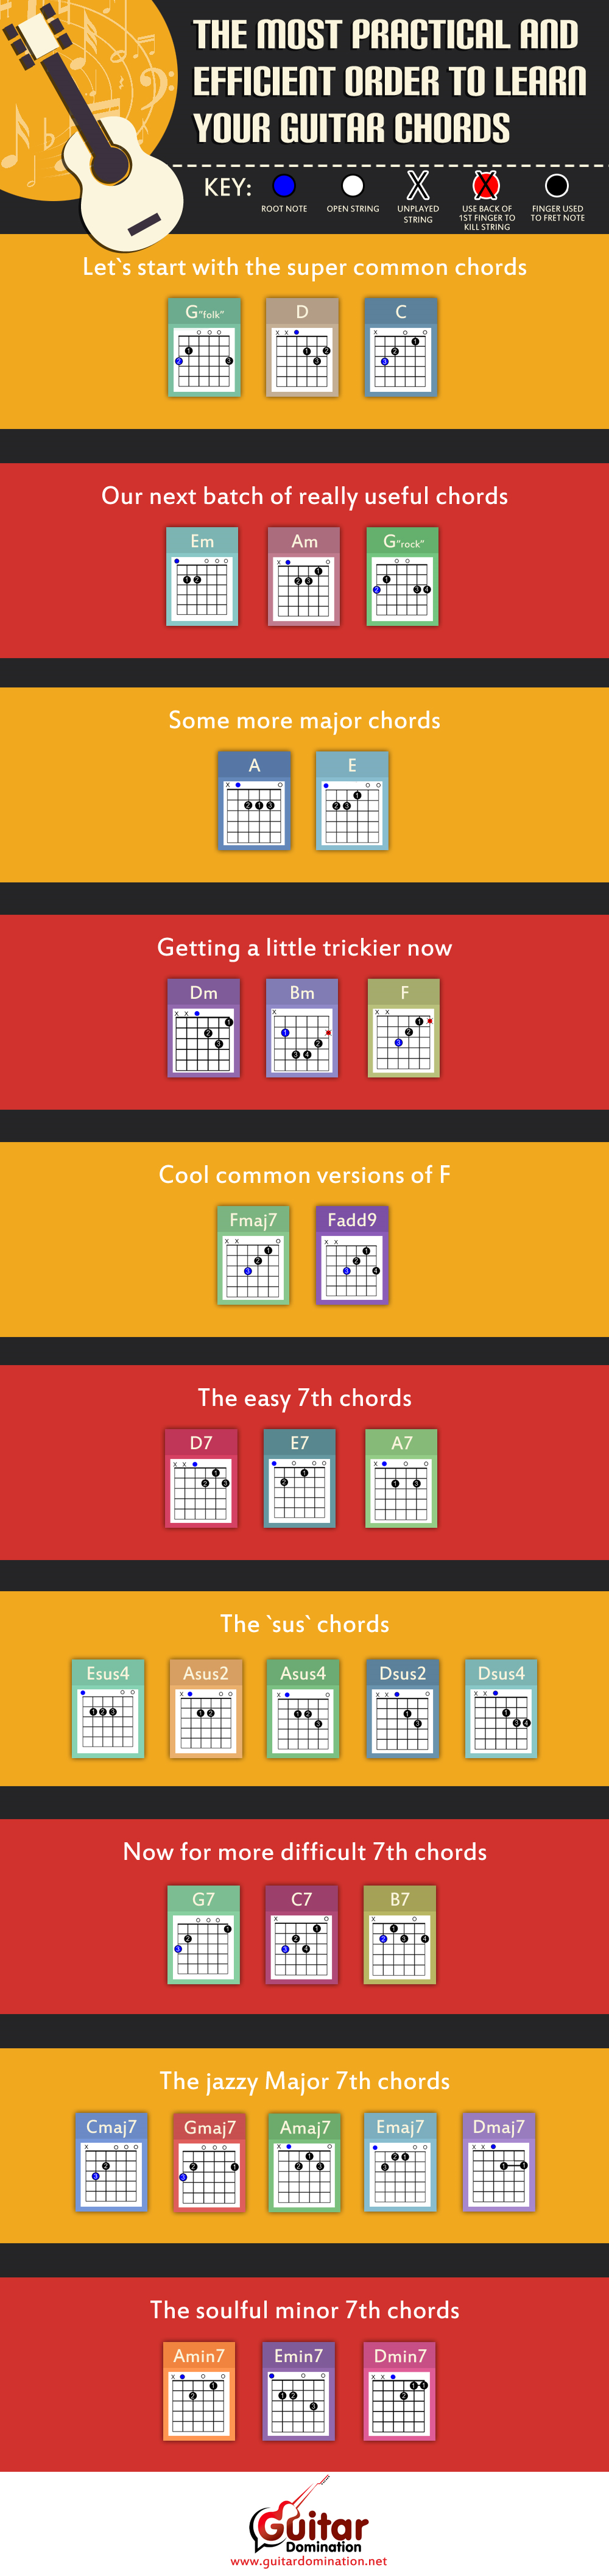 Guitar domination essential chord chart super handy and useful the chords every guitarist should know 32 crucial chord shapes every drummer should know a few chords hexwebz Gallery